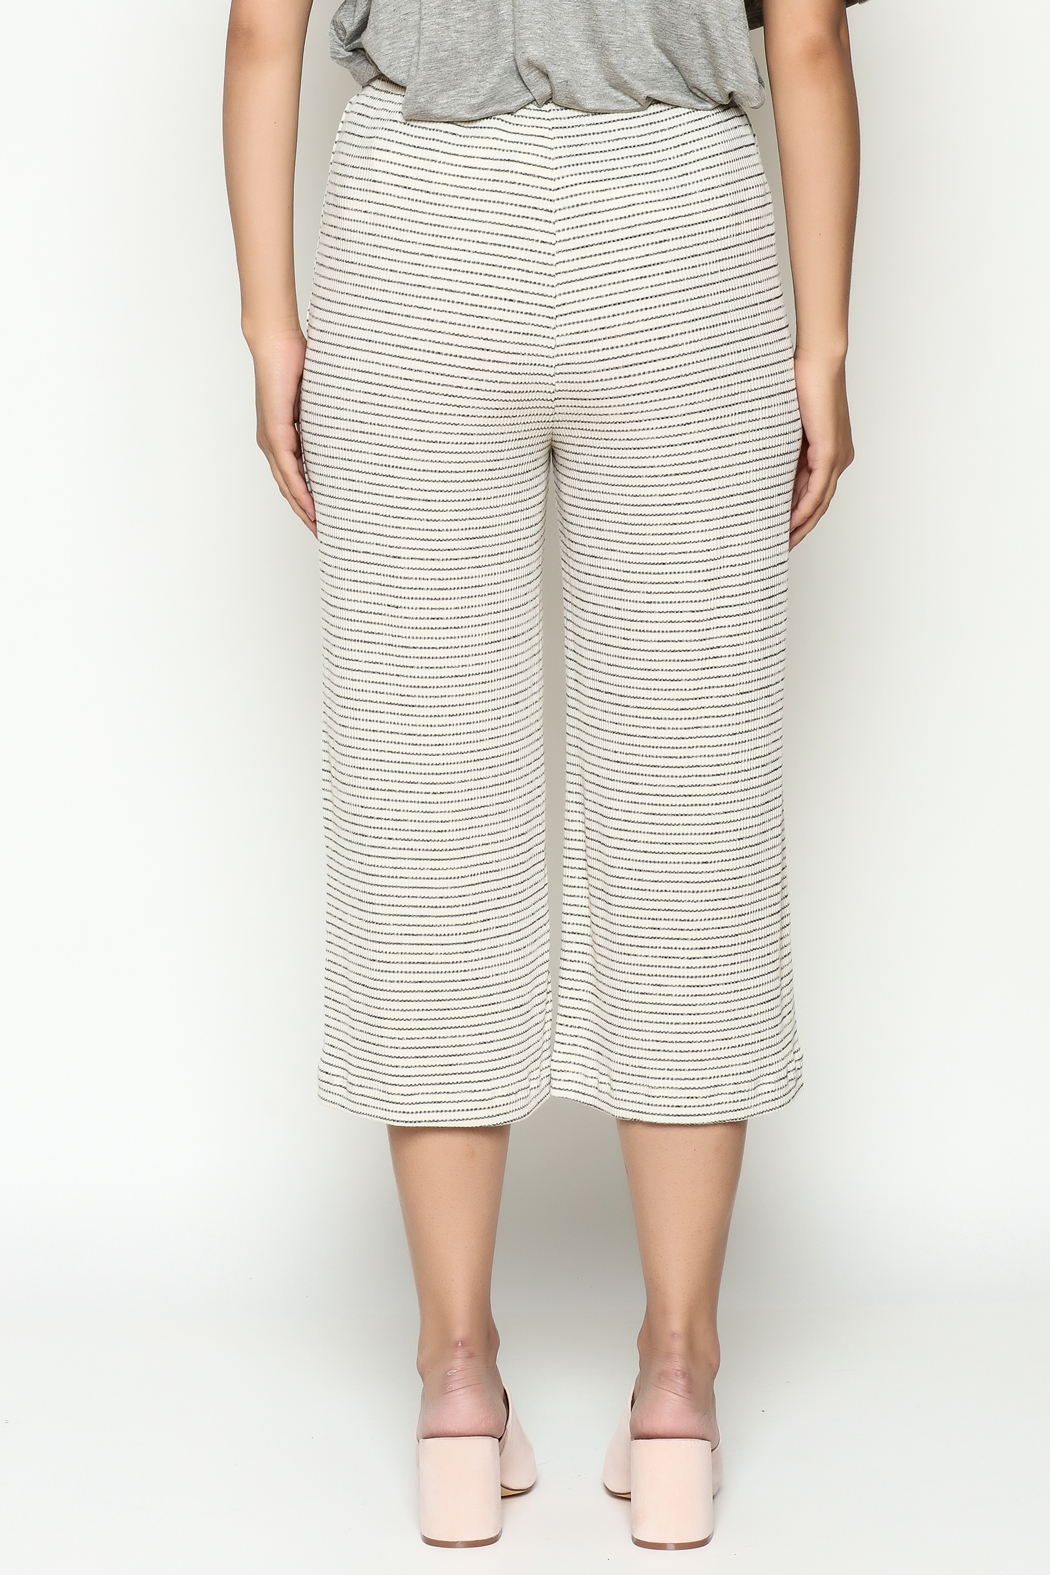 Everly Cropped Knit Pants - Back Cropped Image